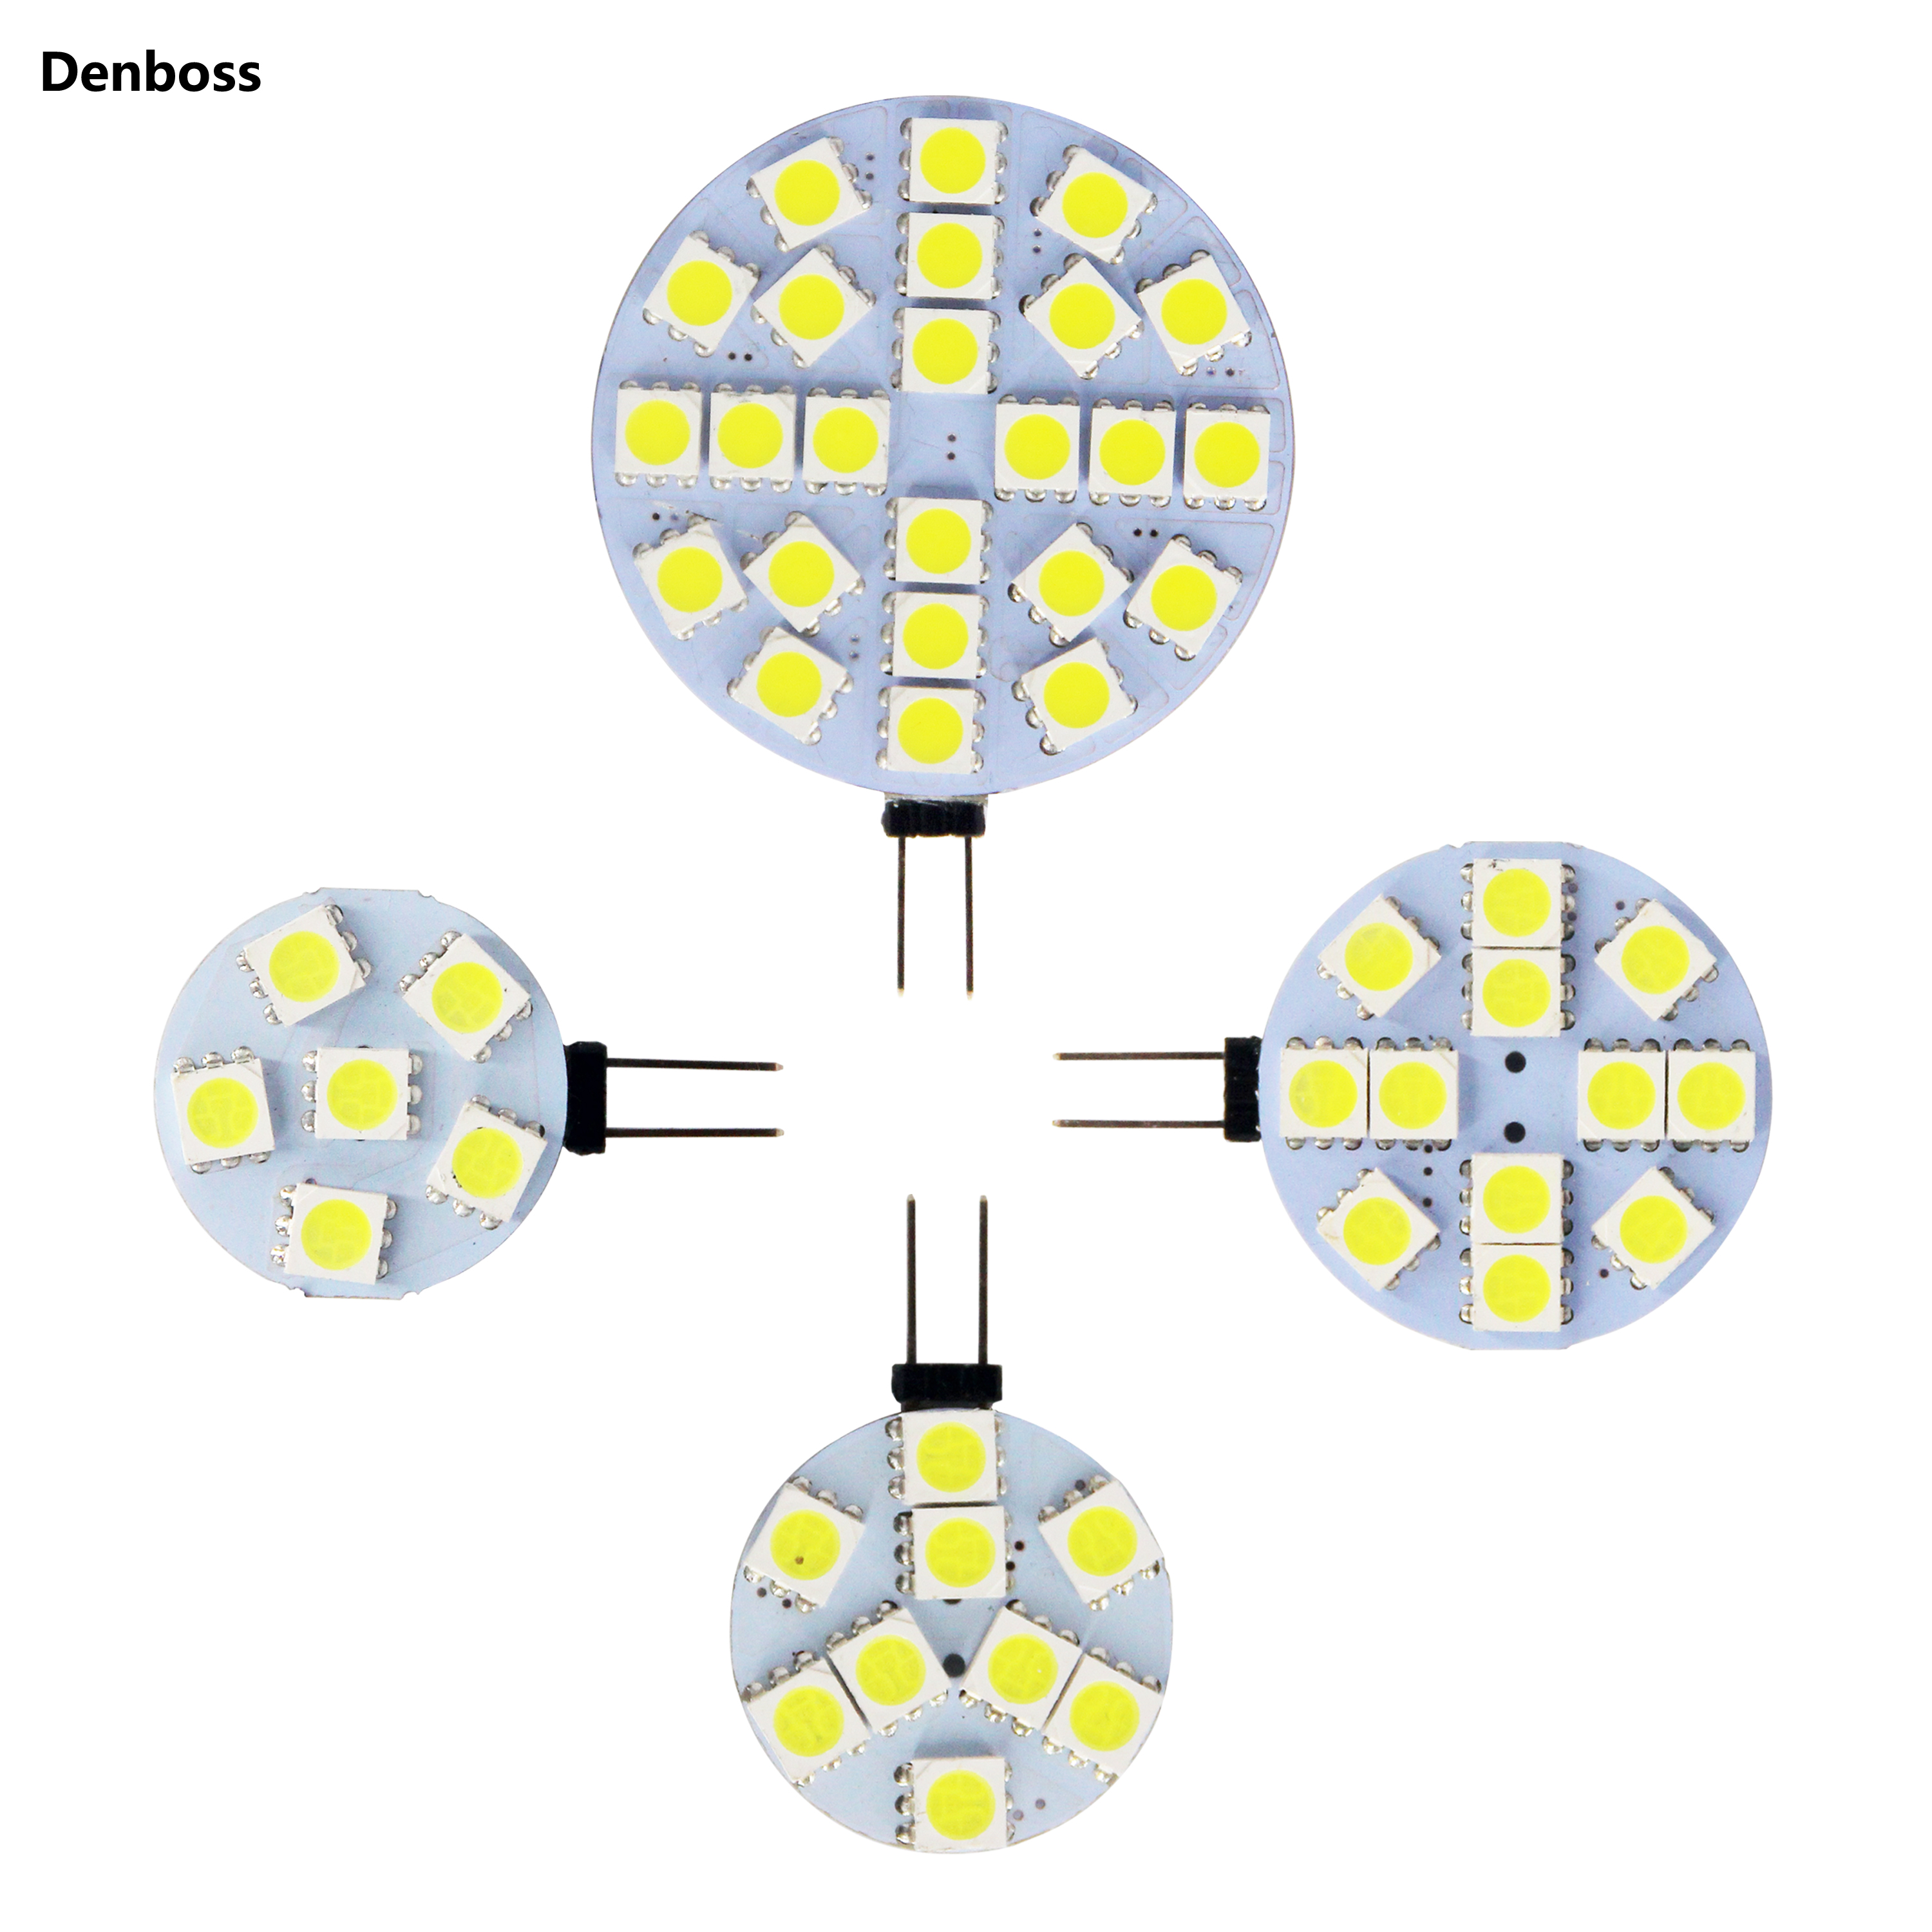 Free Shipping LED Lamp Bulb G4 5050 SMD 6 Leds 24 Leds 12 Leds 9 Leds 12V AC DC Replace Halogen Lighting Lights Spotlight